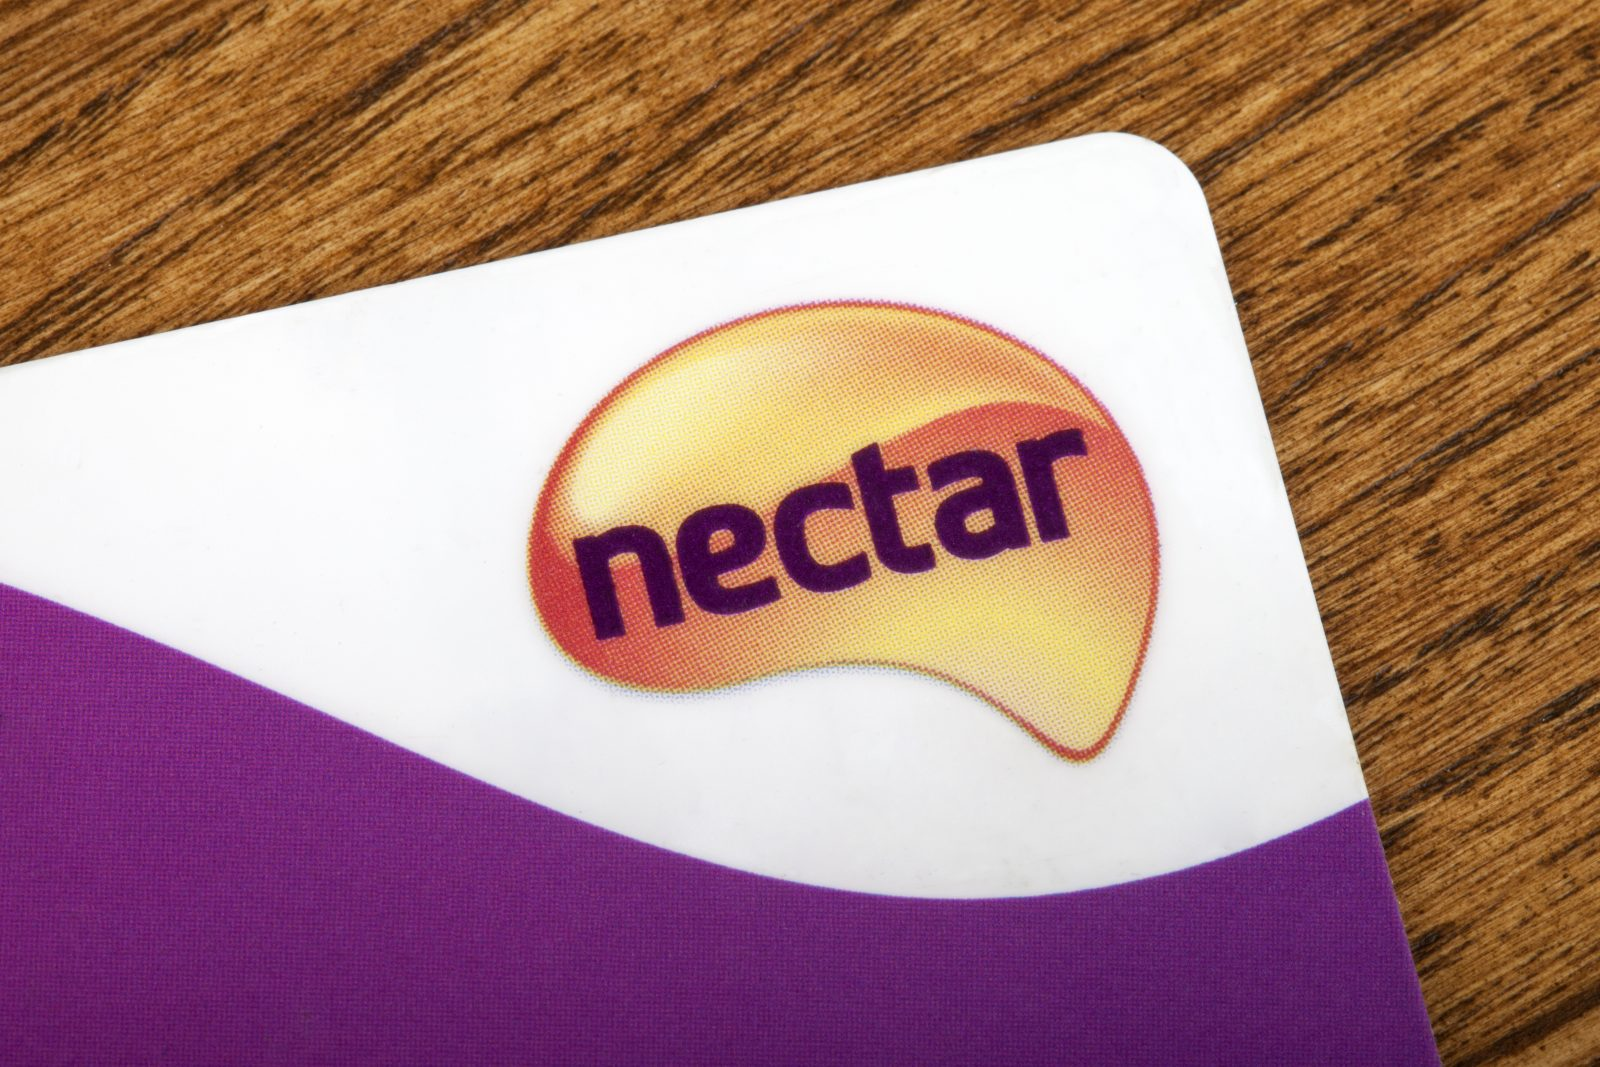 Nectar Customer Services